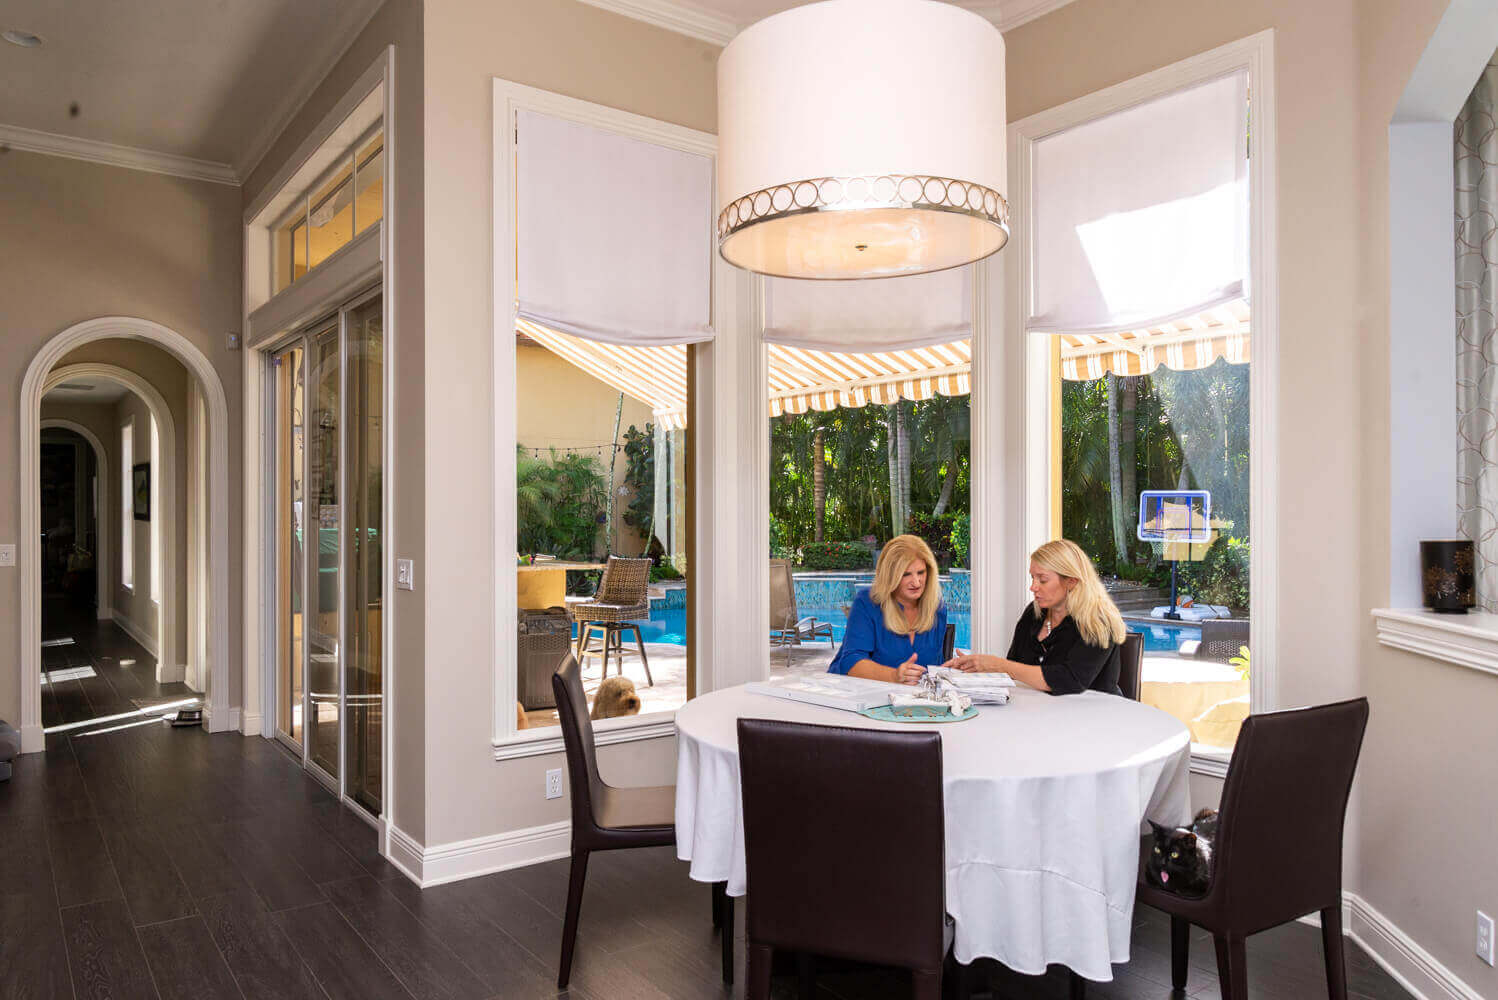 A Gotcha Covered design expert will meet with you to determine the best motorized window treatment options for your home.